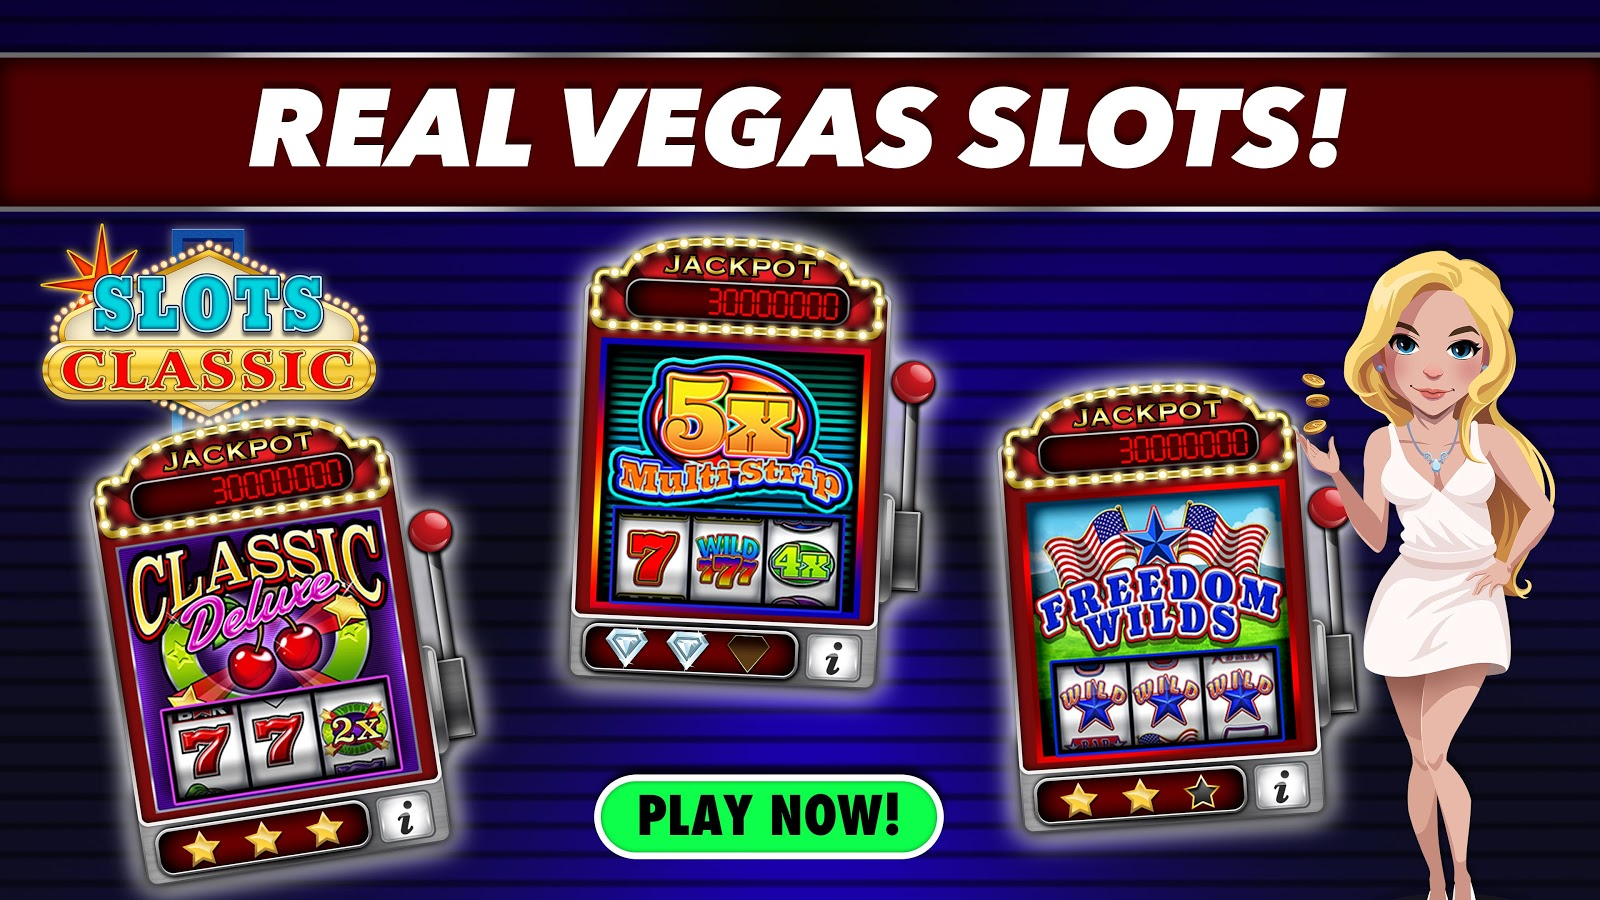 Online slots with FREE SPINS - Play online slot machine games at Slotozilla! - 7